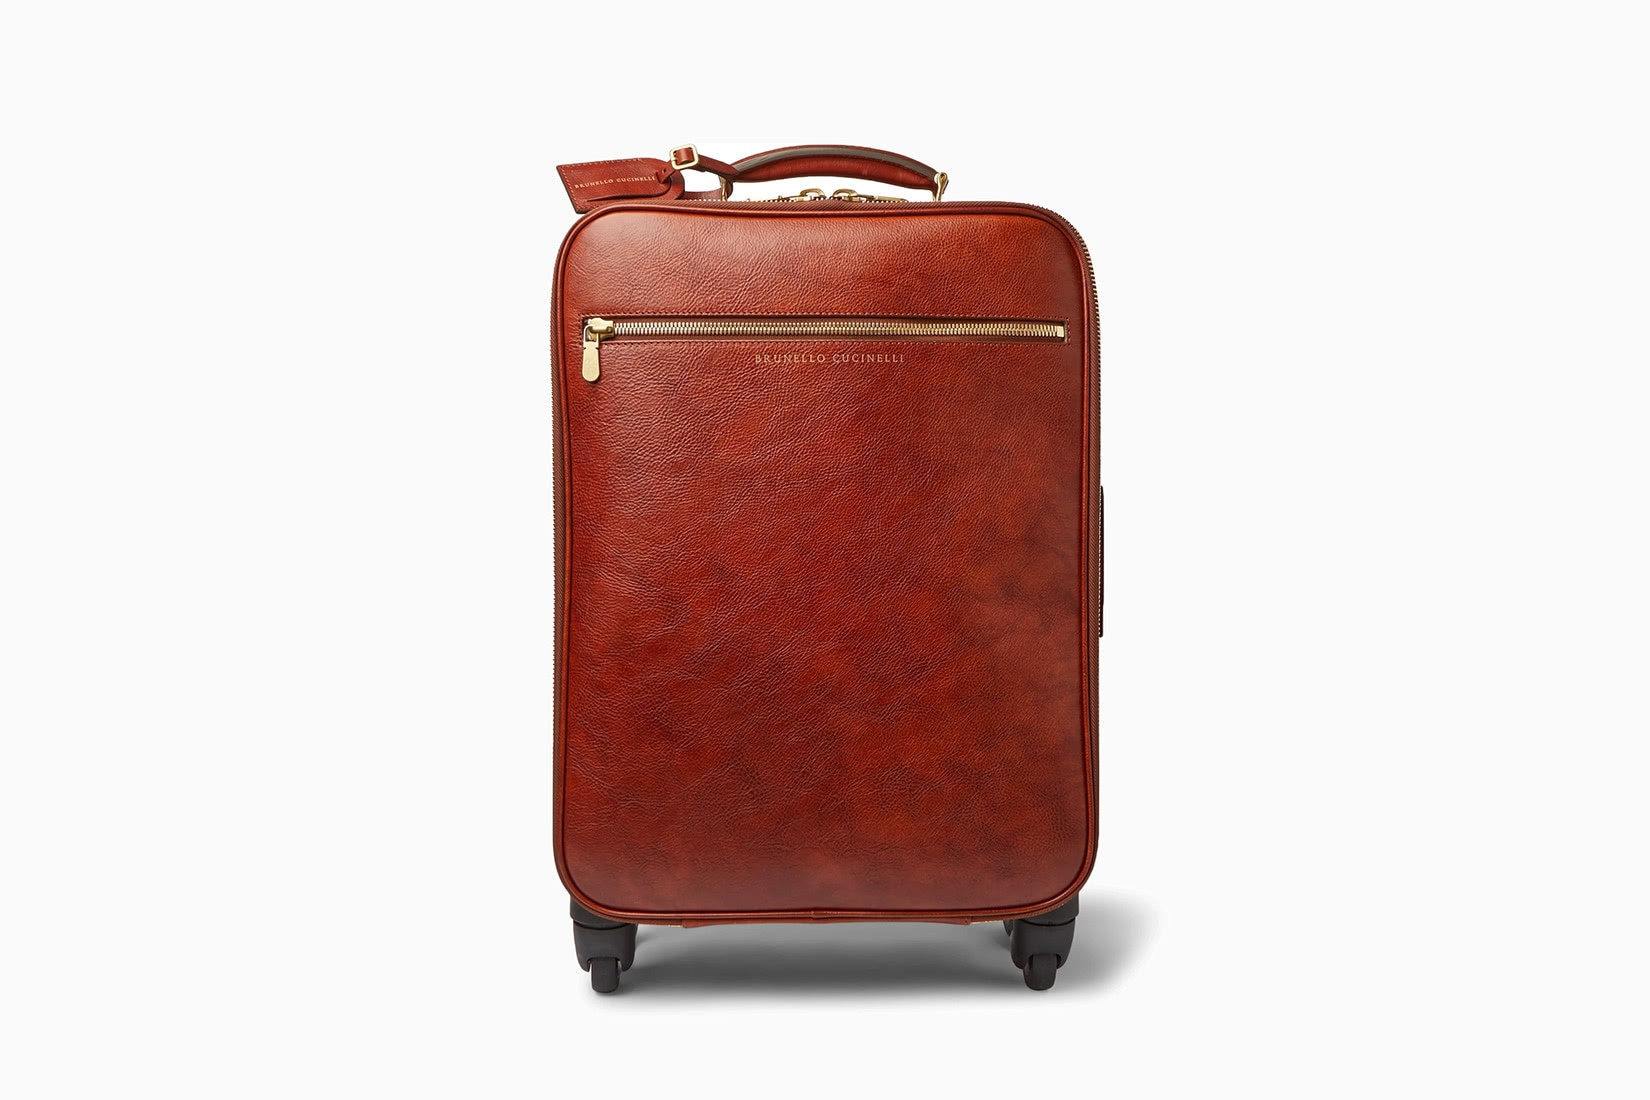 best carry-on luggage travel expensive brunello cucinelli - Luxe Digital